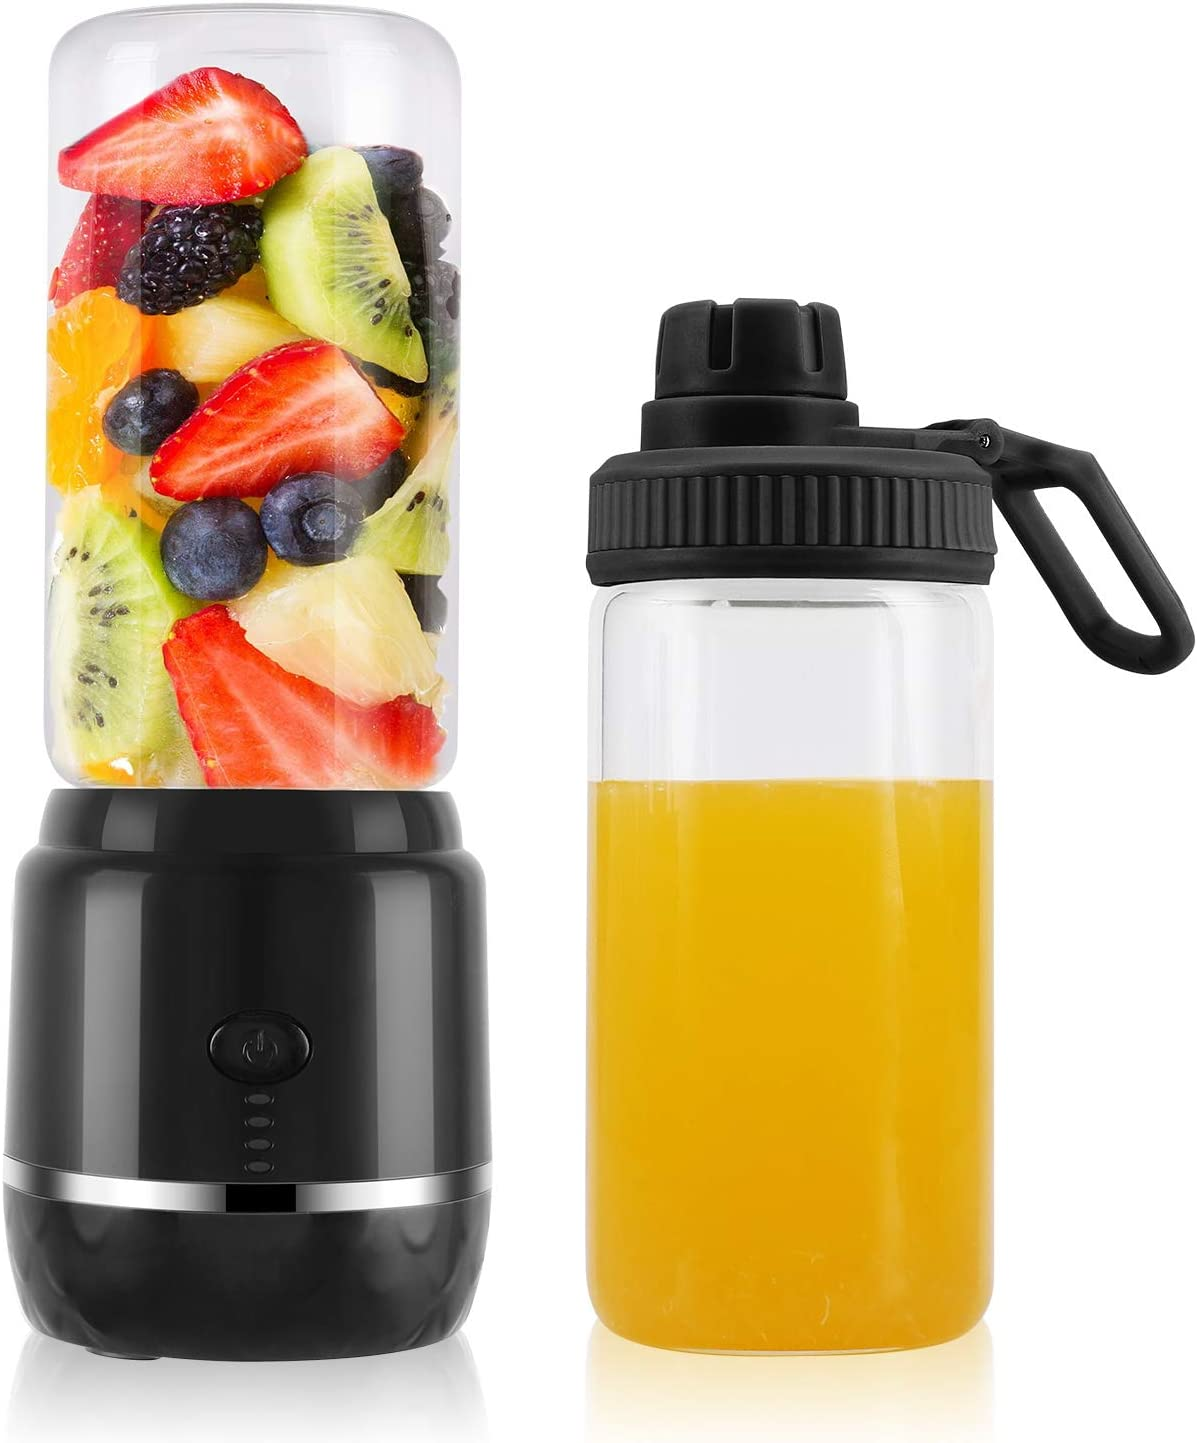 Portable Blender, Personal Size Blender Shakes and Smoothies Mini Jucier Cup USB Rechargeable Battery Strong Power Ice Blender Mixer Home Office Sports Travel Outdoors-black (Single cup, black)…